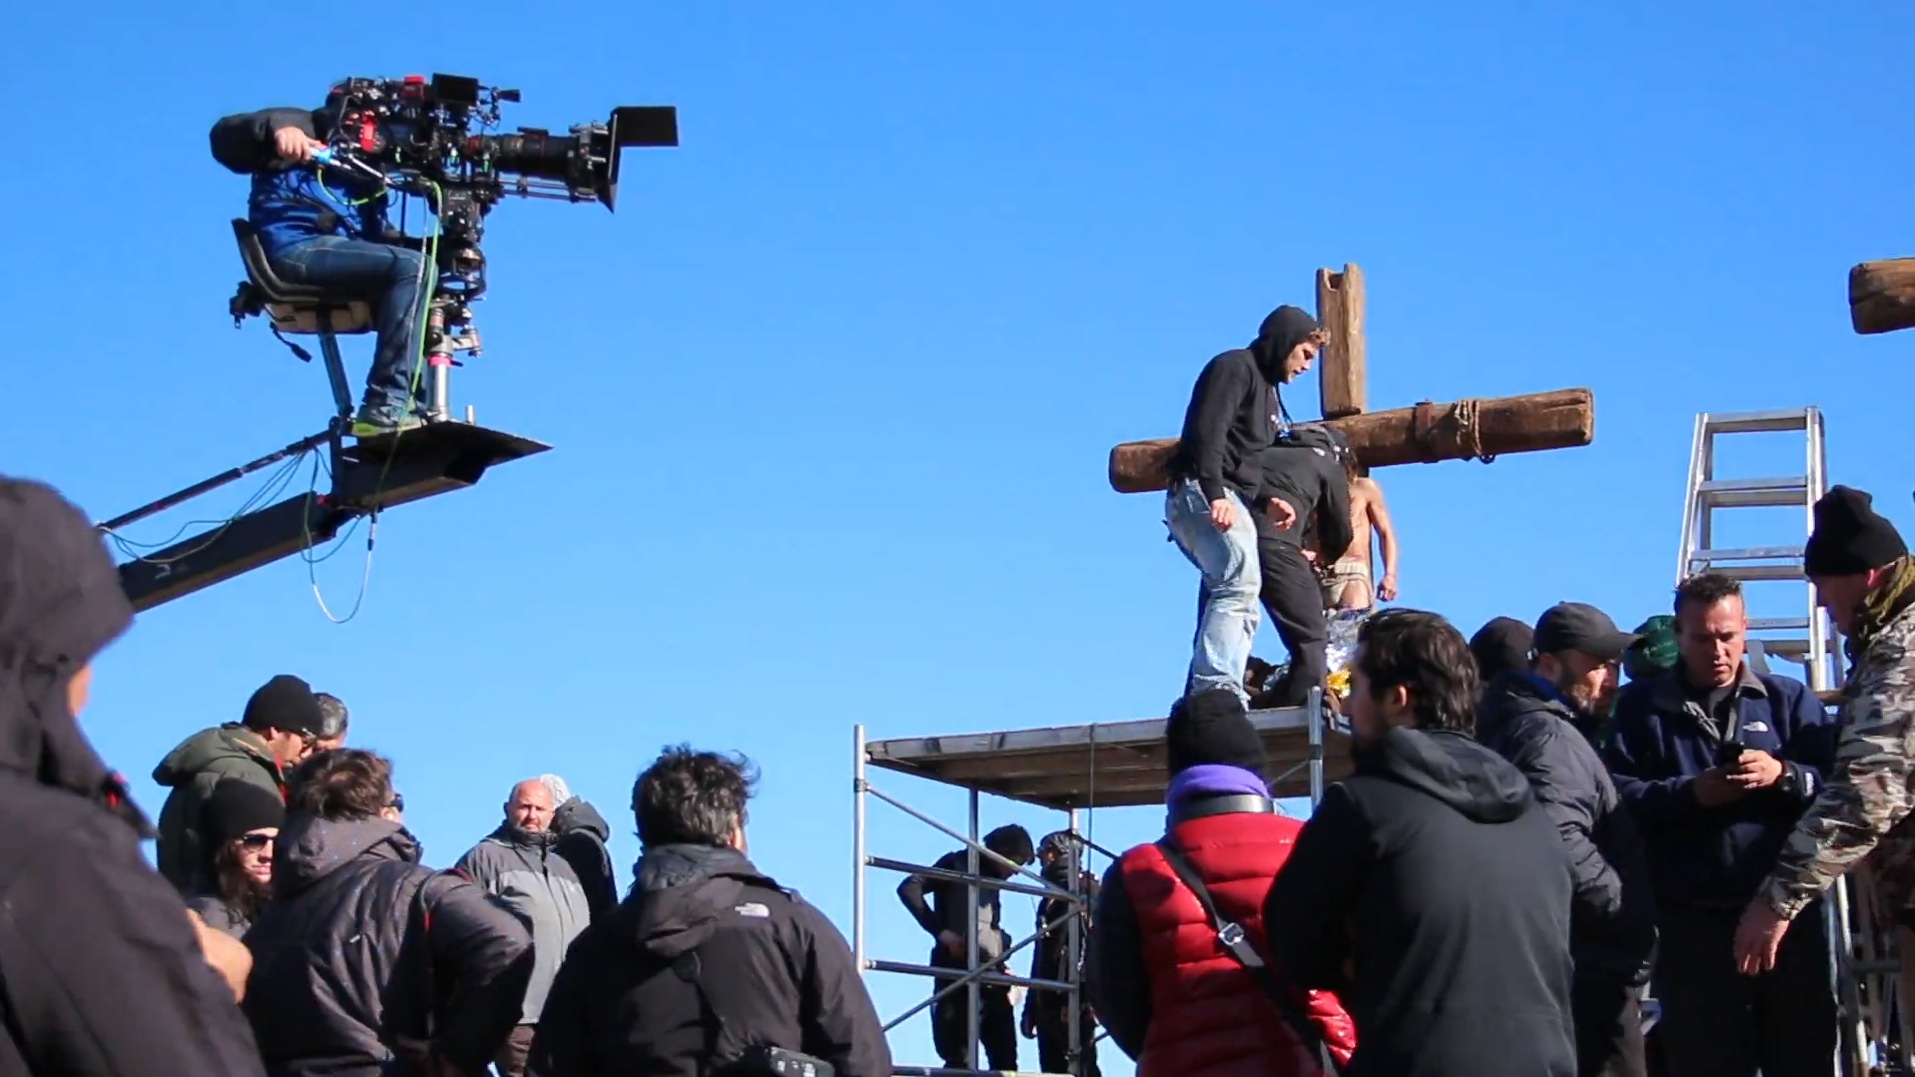 Shooting the crucifixion scene on the set of Paramount Pictures 'Ben Hur'.